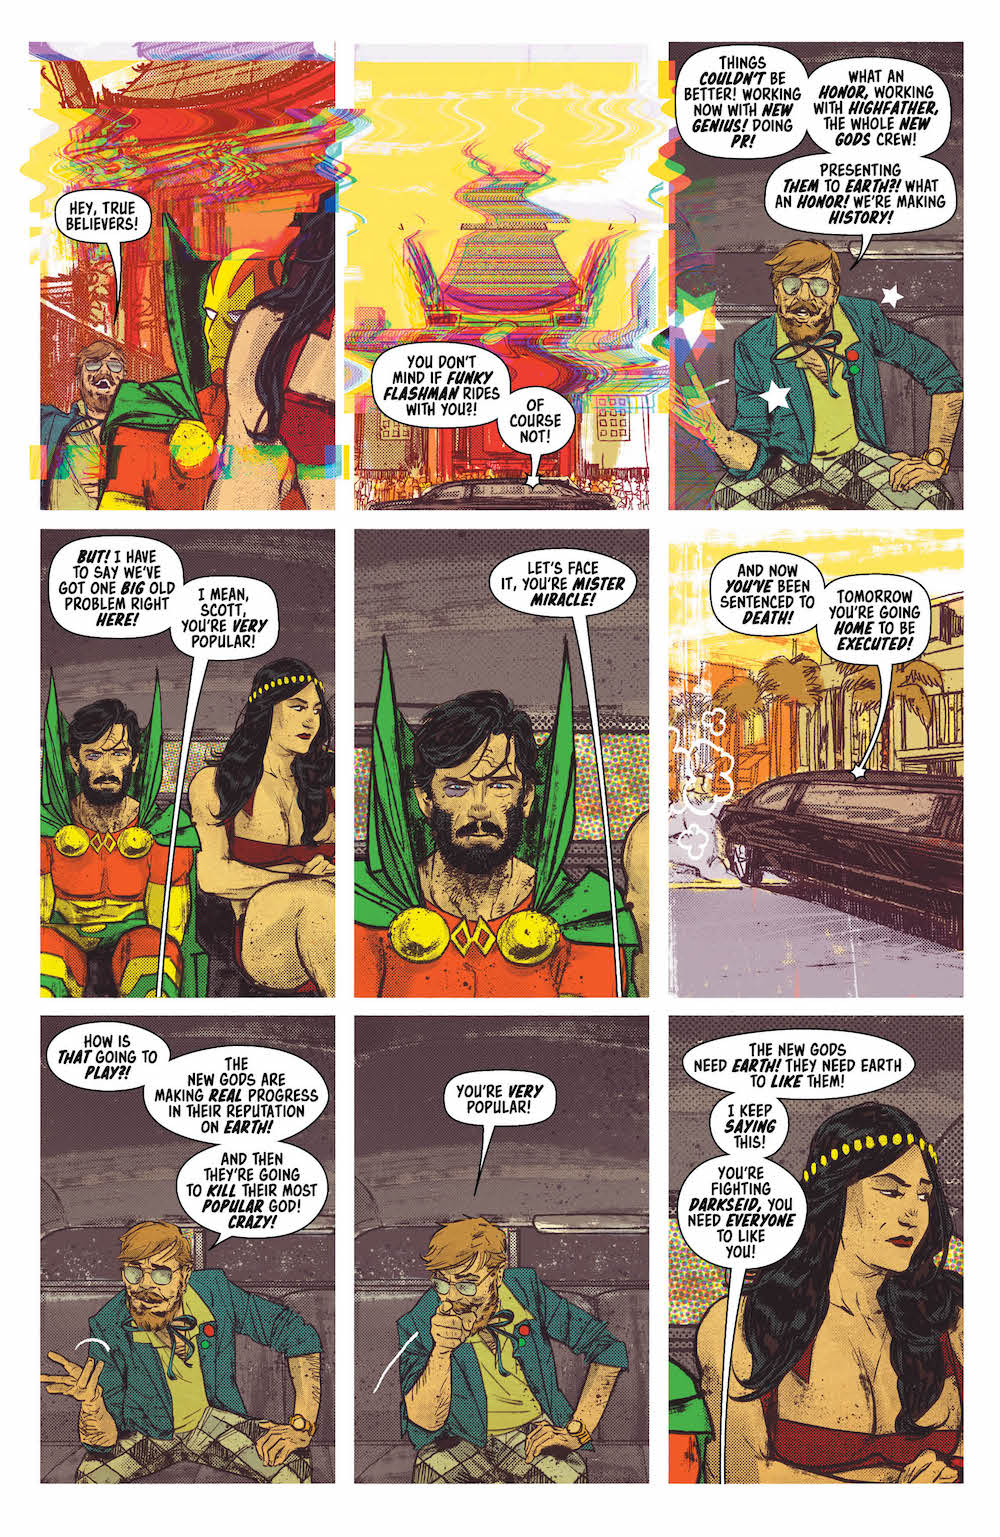 Funky Flashman, Mister Miracle, Big Barda, Mister Miracle 5